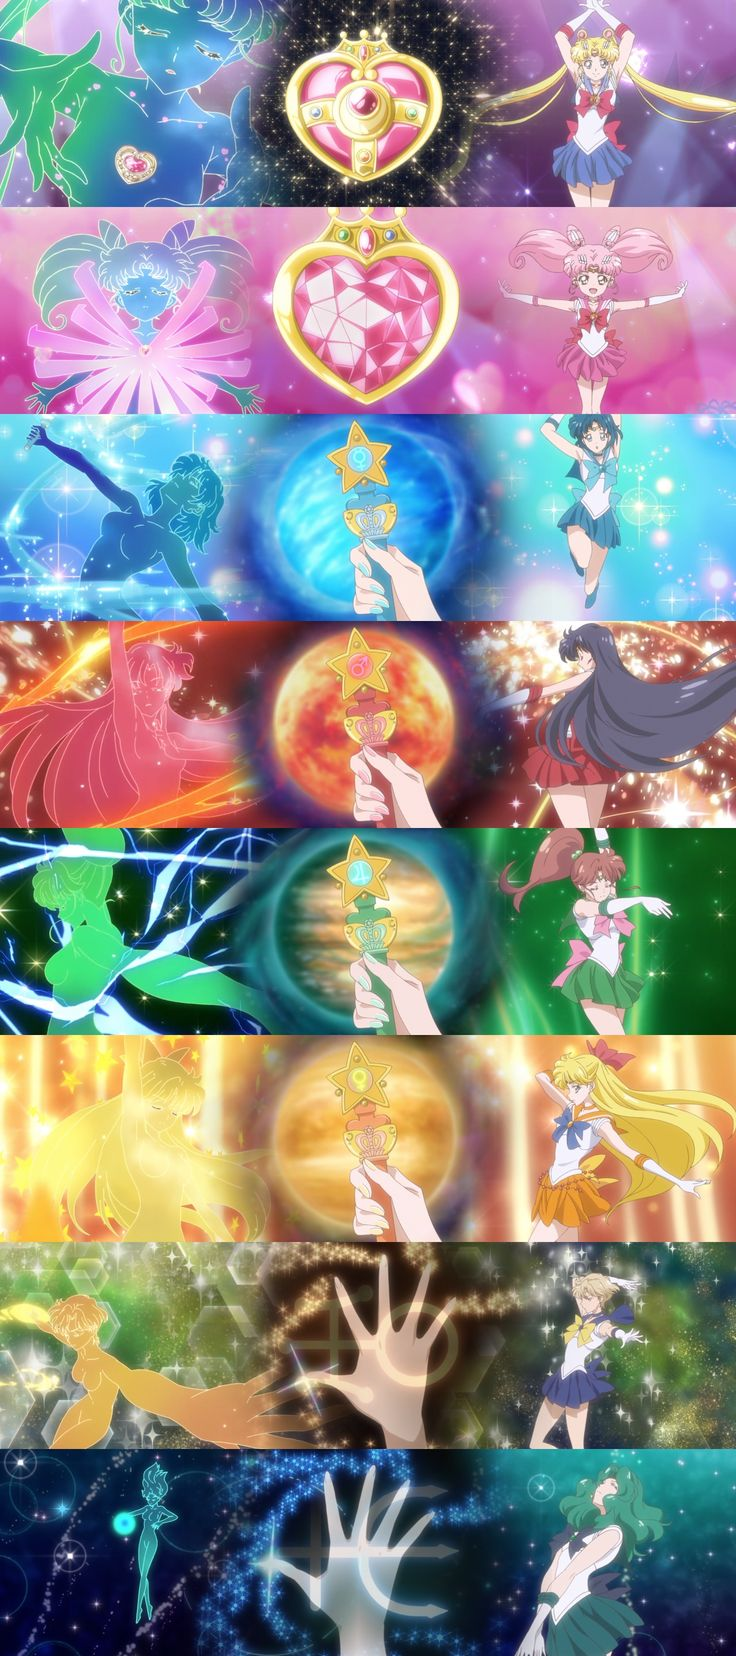 Sailor Senshi transformation's in SM Crystal III